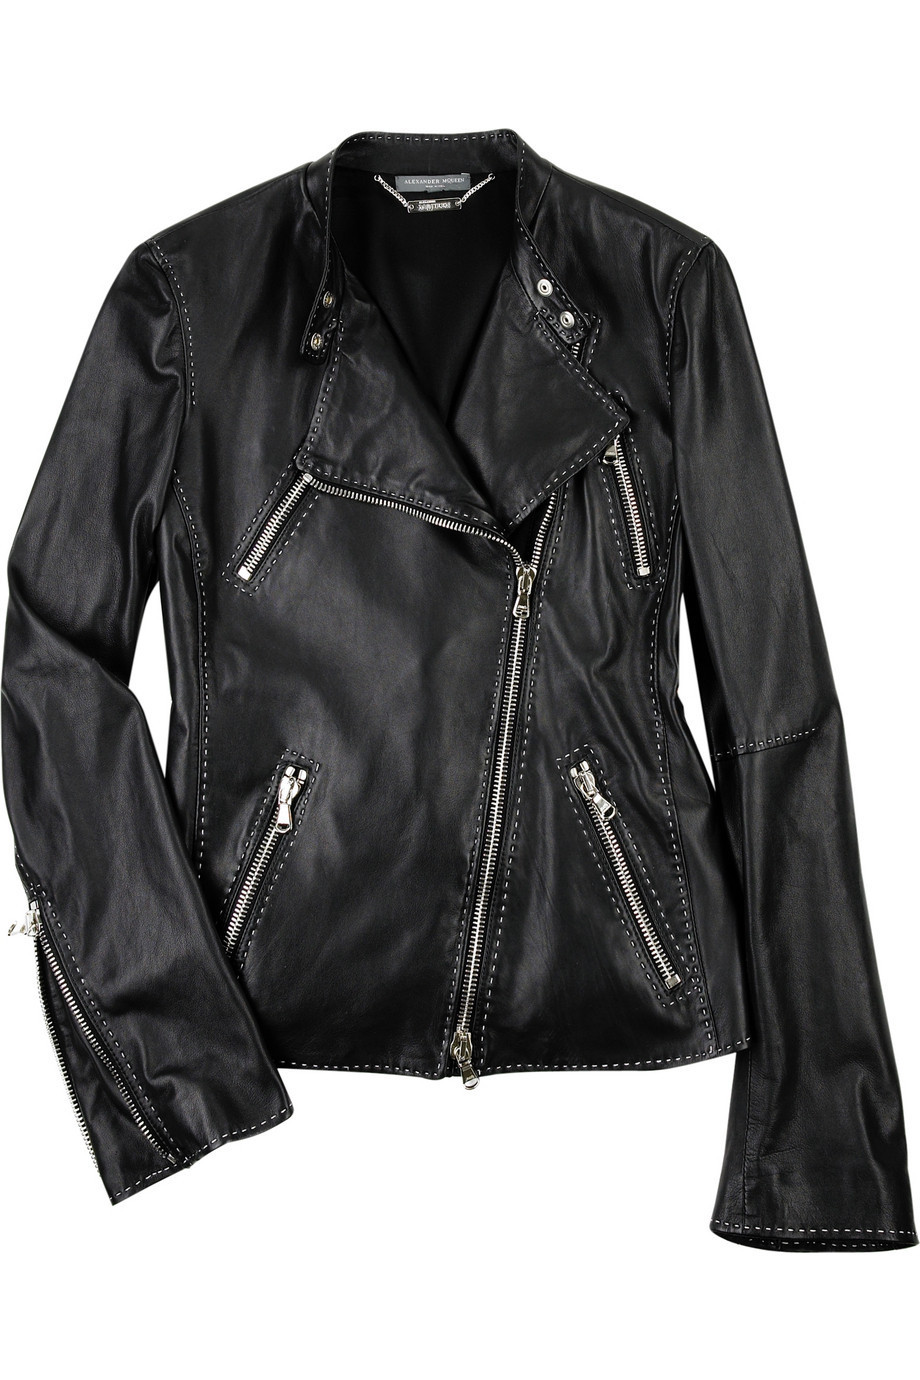 Alexander McQueen Leather biker jacket  | NET-A-PORTER.COM from net-a-porter.com